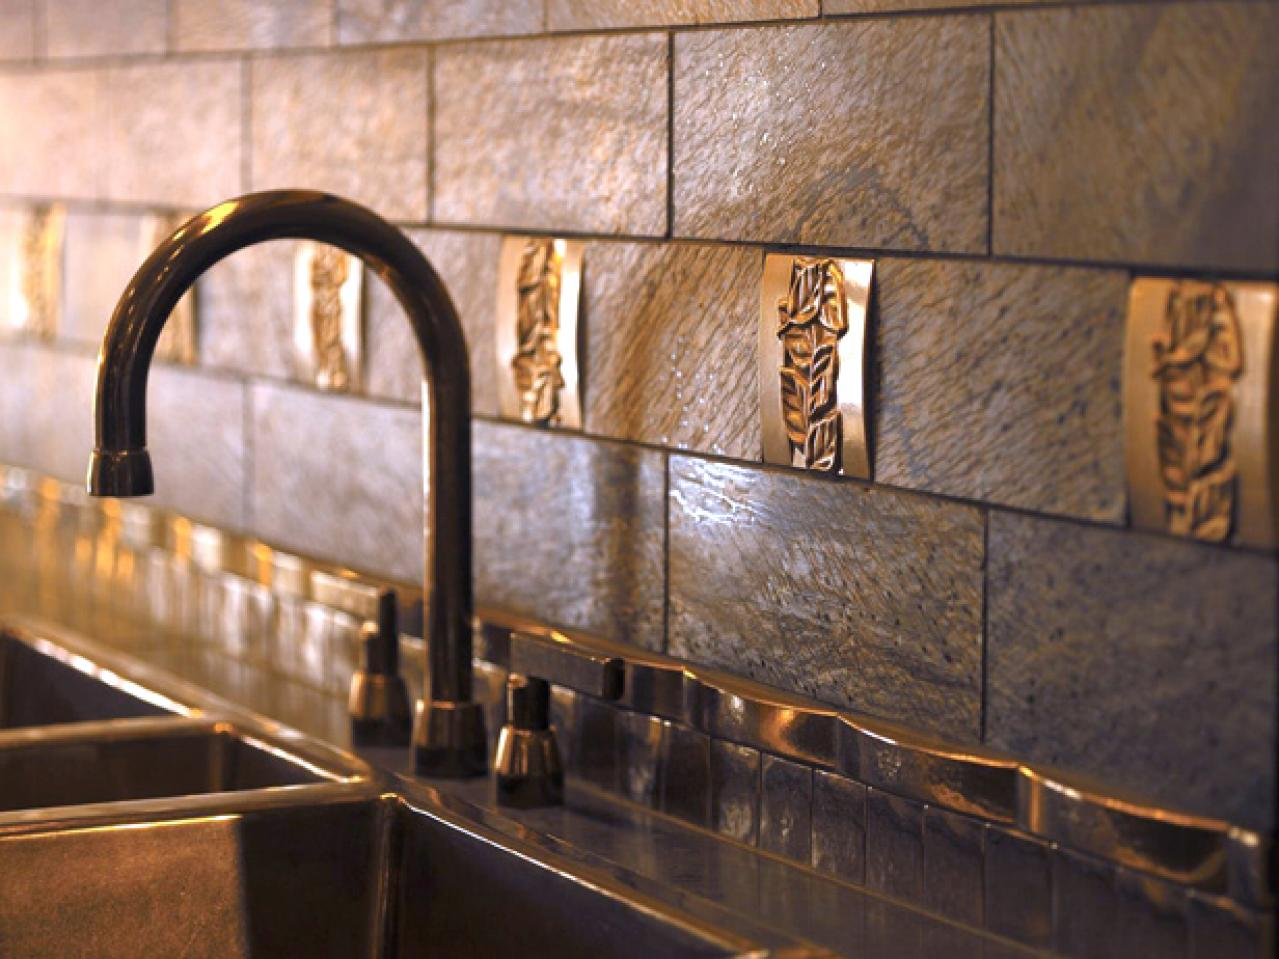 Metal tile backsplashes hgtv metal tile backsplashes dailygadgetfo Image collections